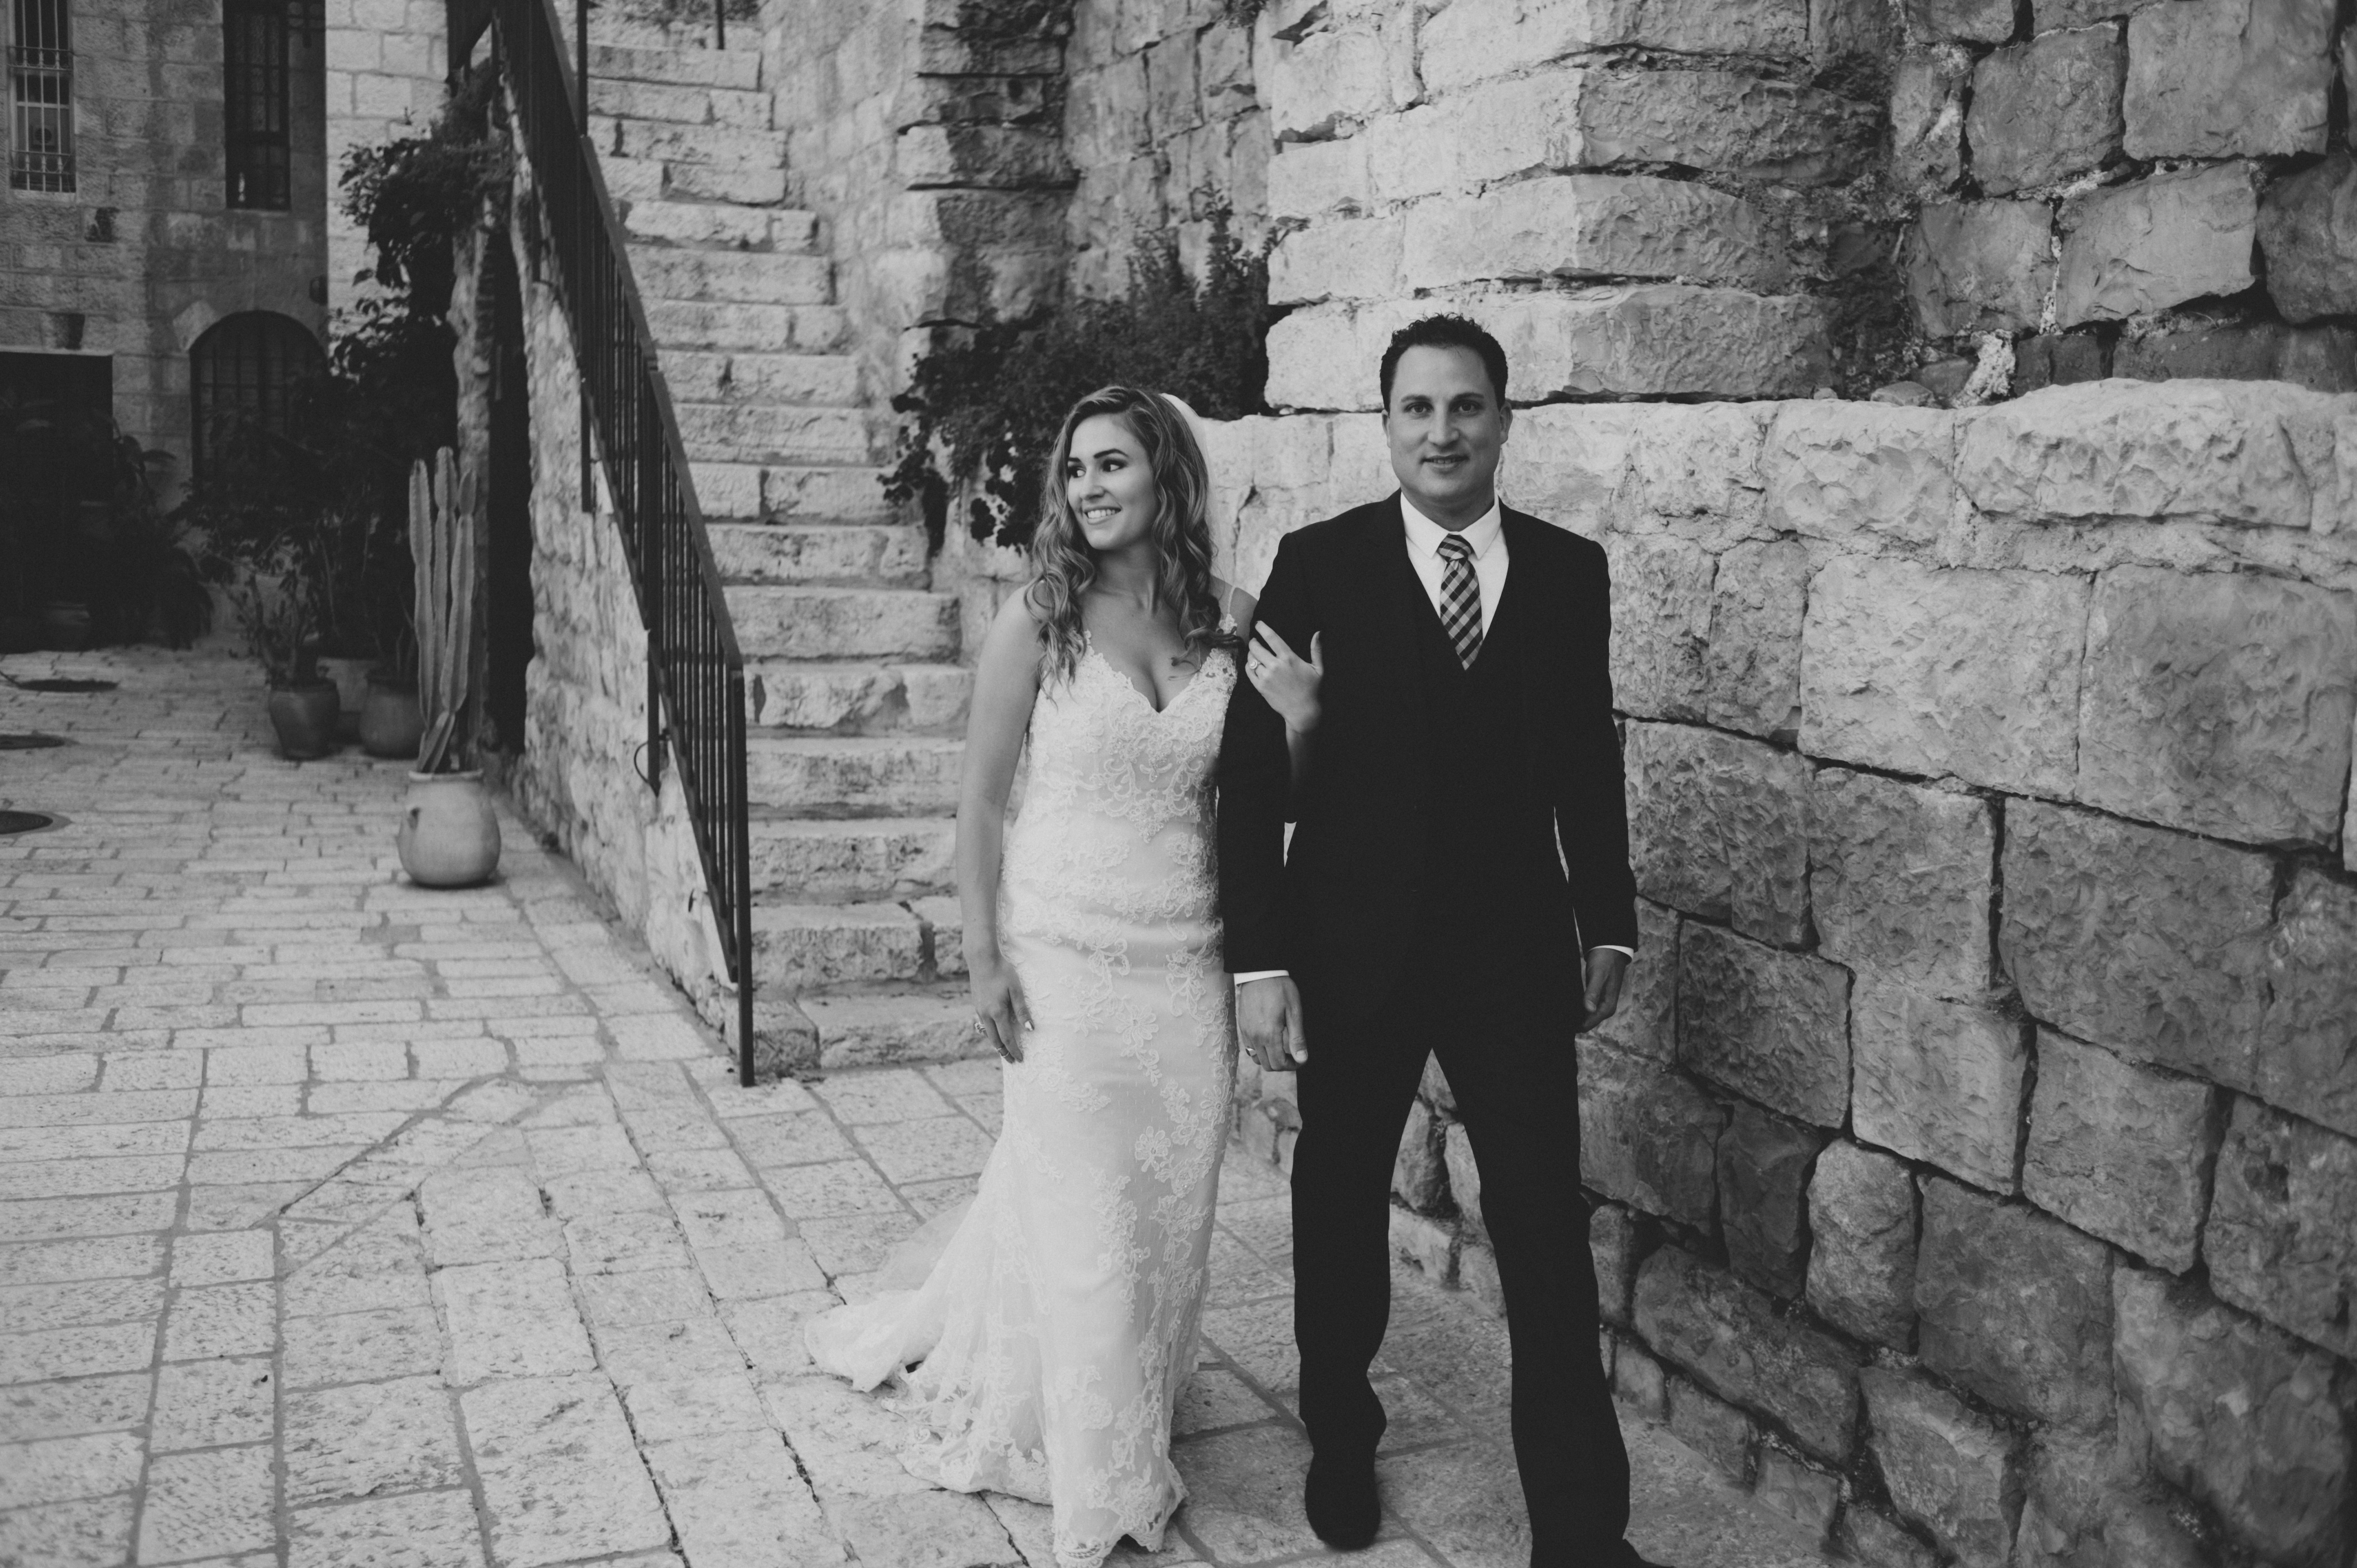 bridal portraits - jerusalem - lovelaughexplore.com